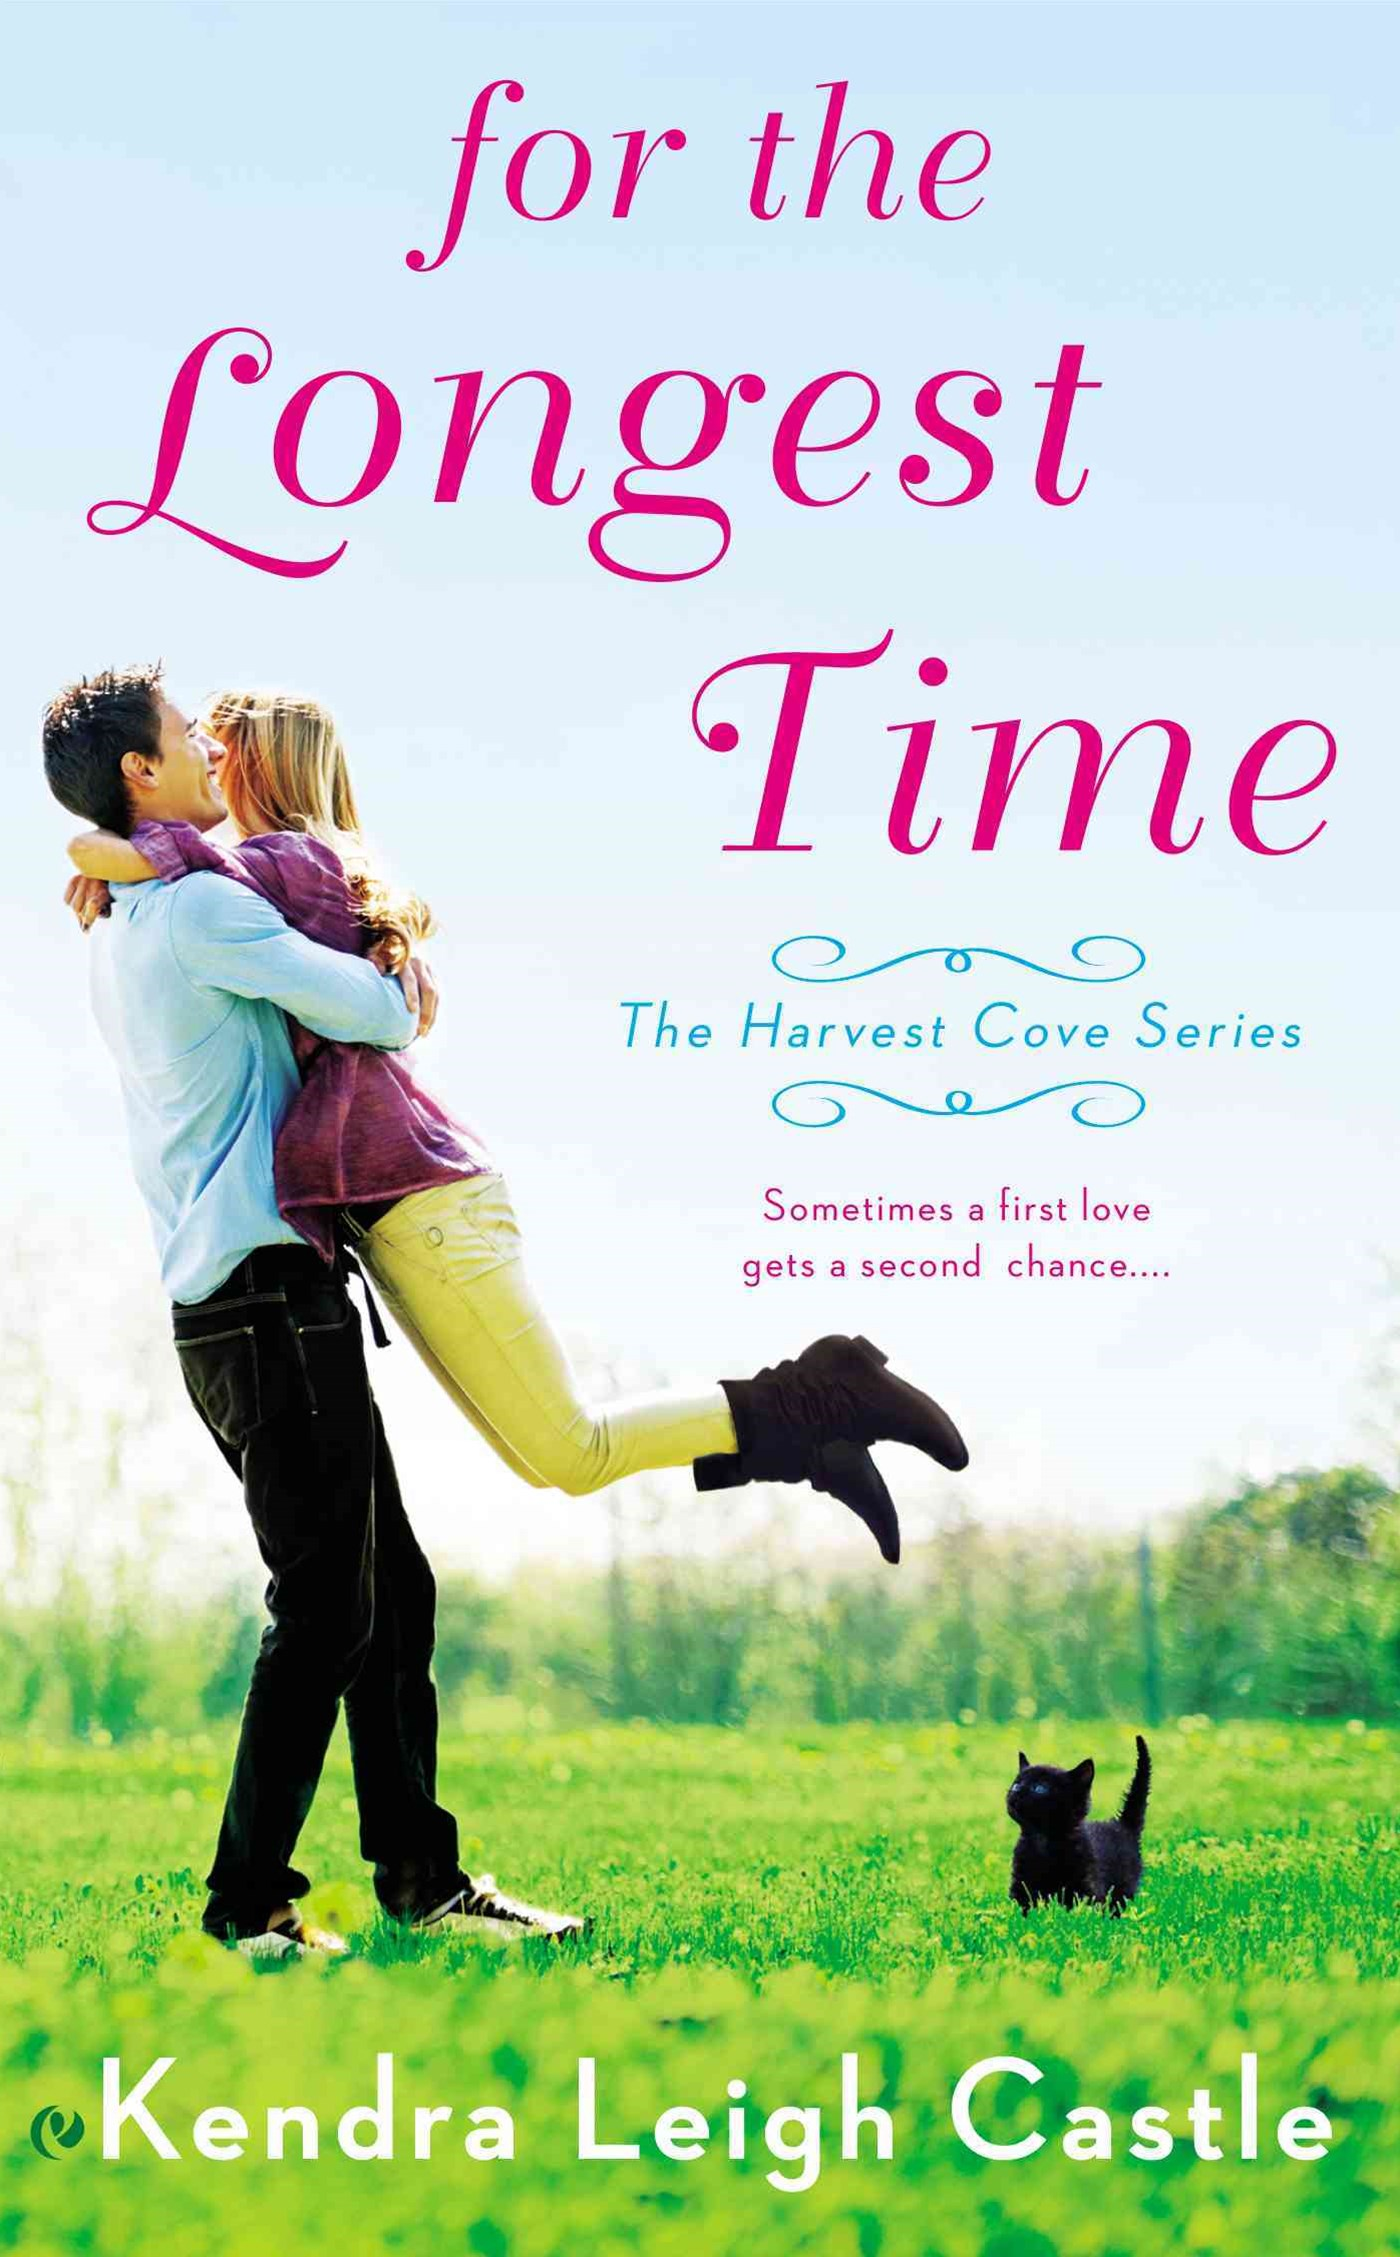 For the Longest Time: The Harvest Cove Series Book 1